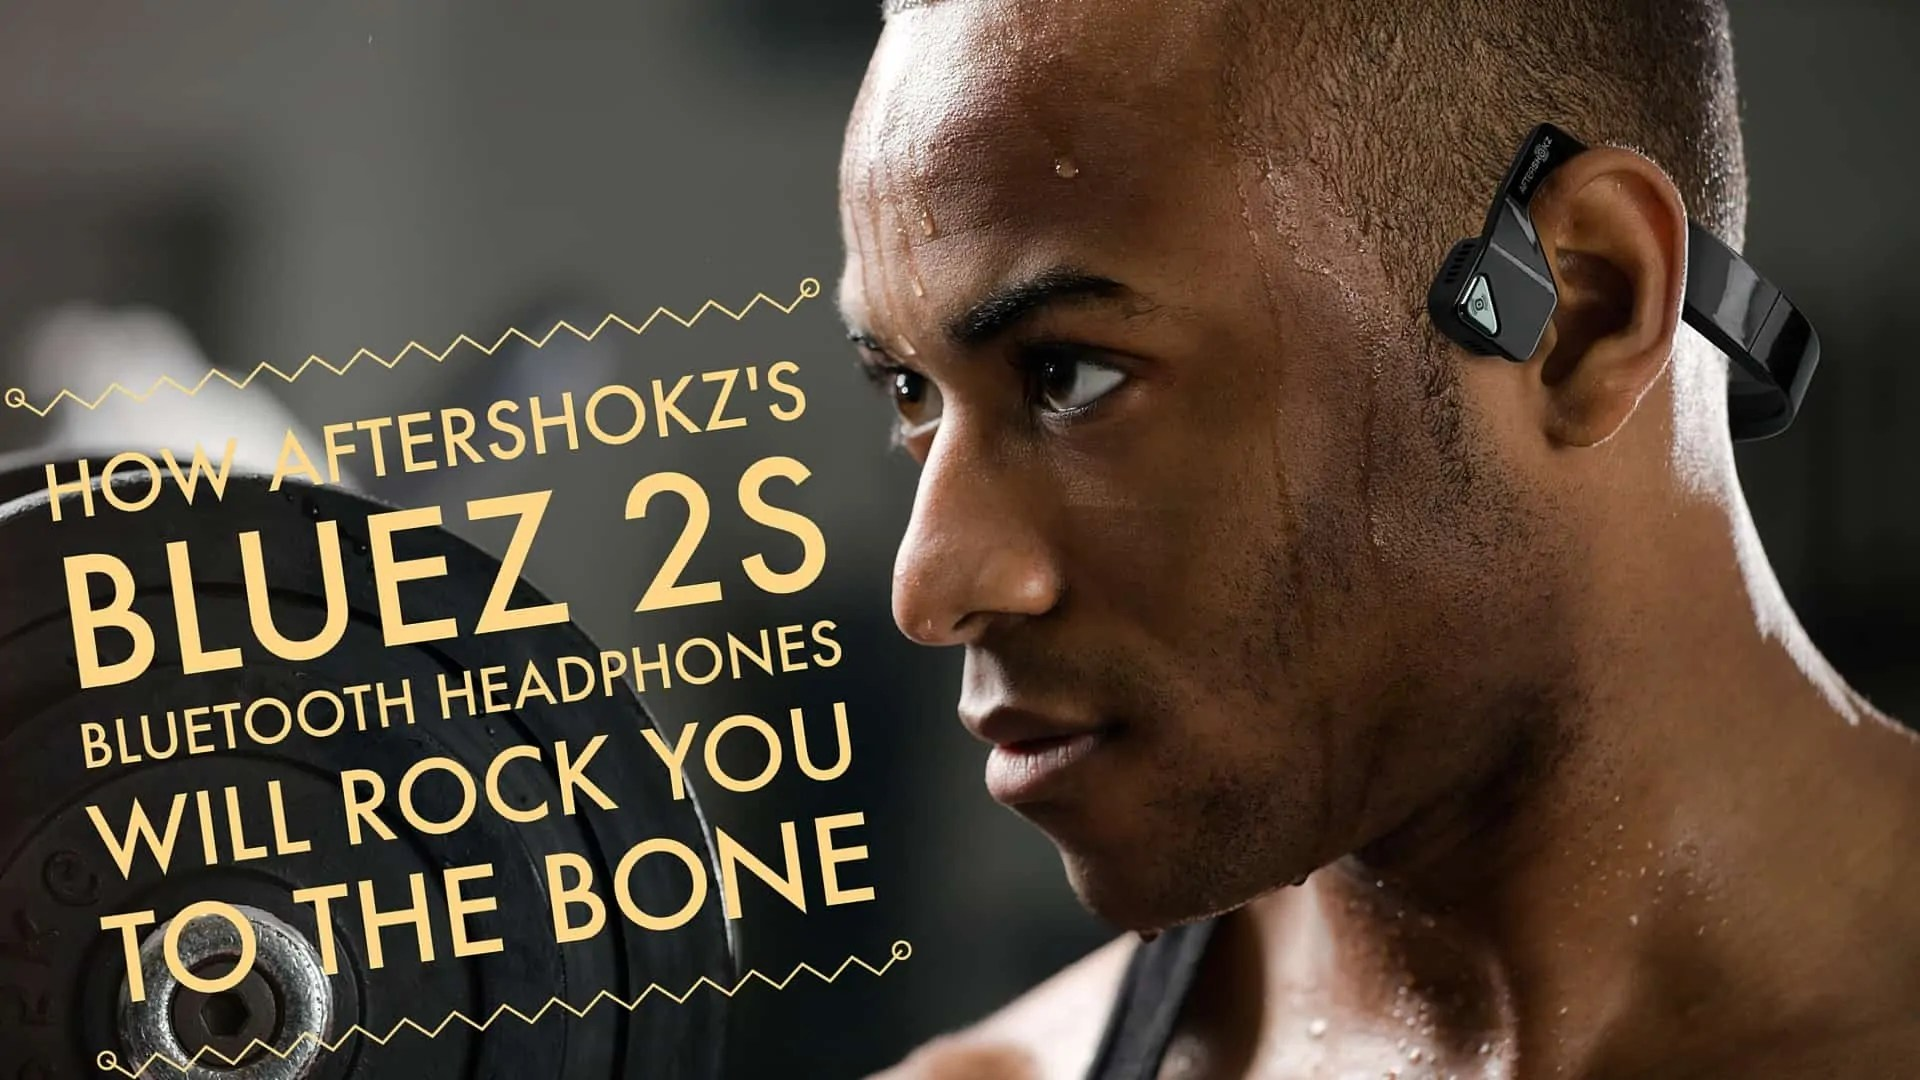 How AfterShokz's Bluez 2S Bluetooth Headphones Will Rock You to the BONE (Featured Image)